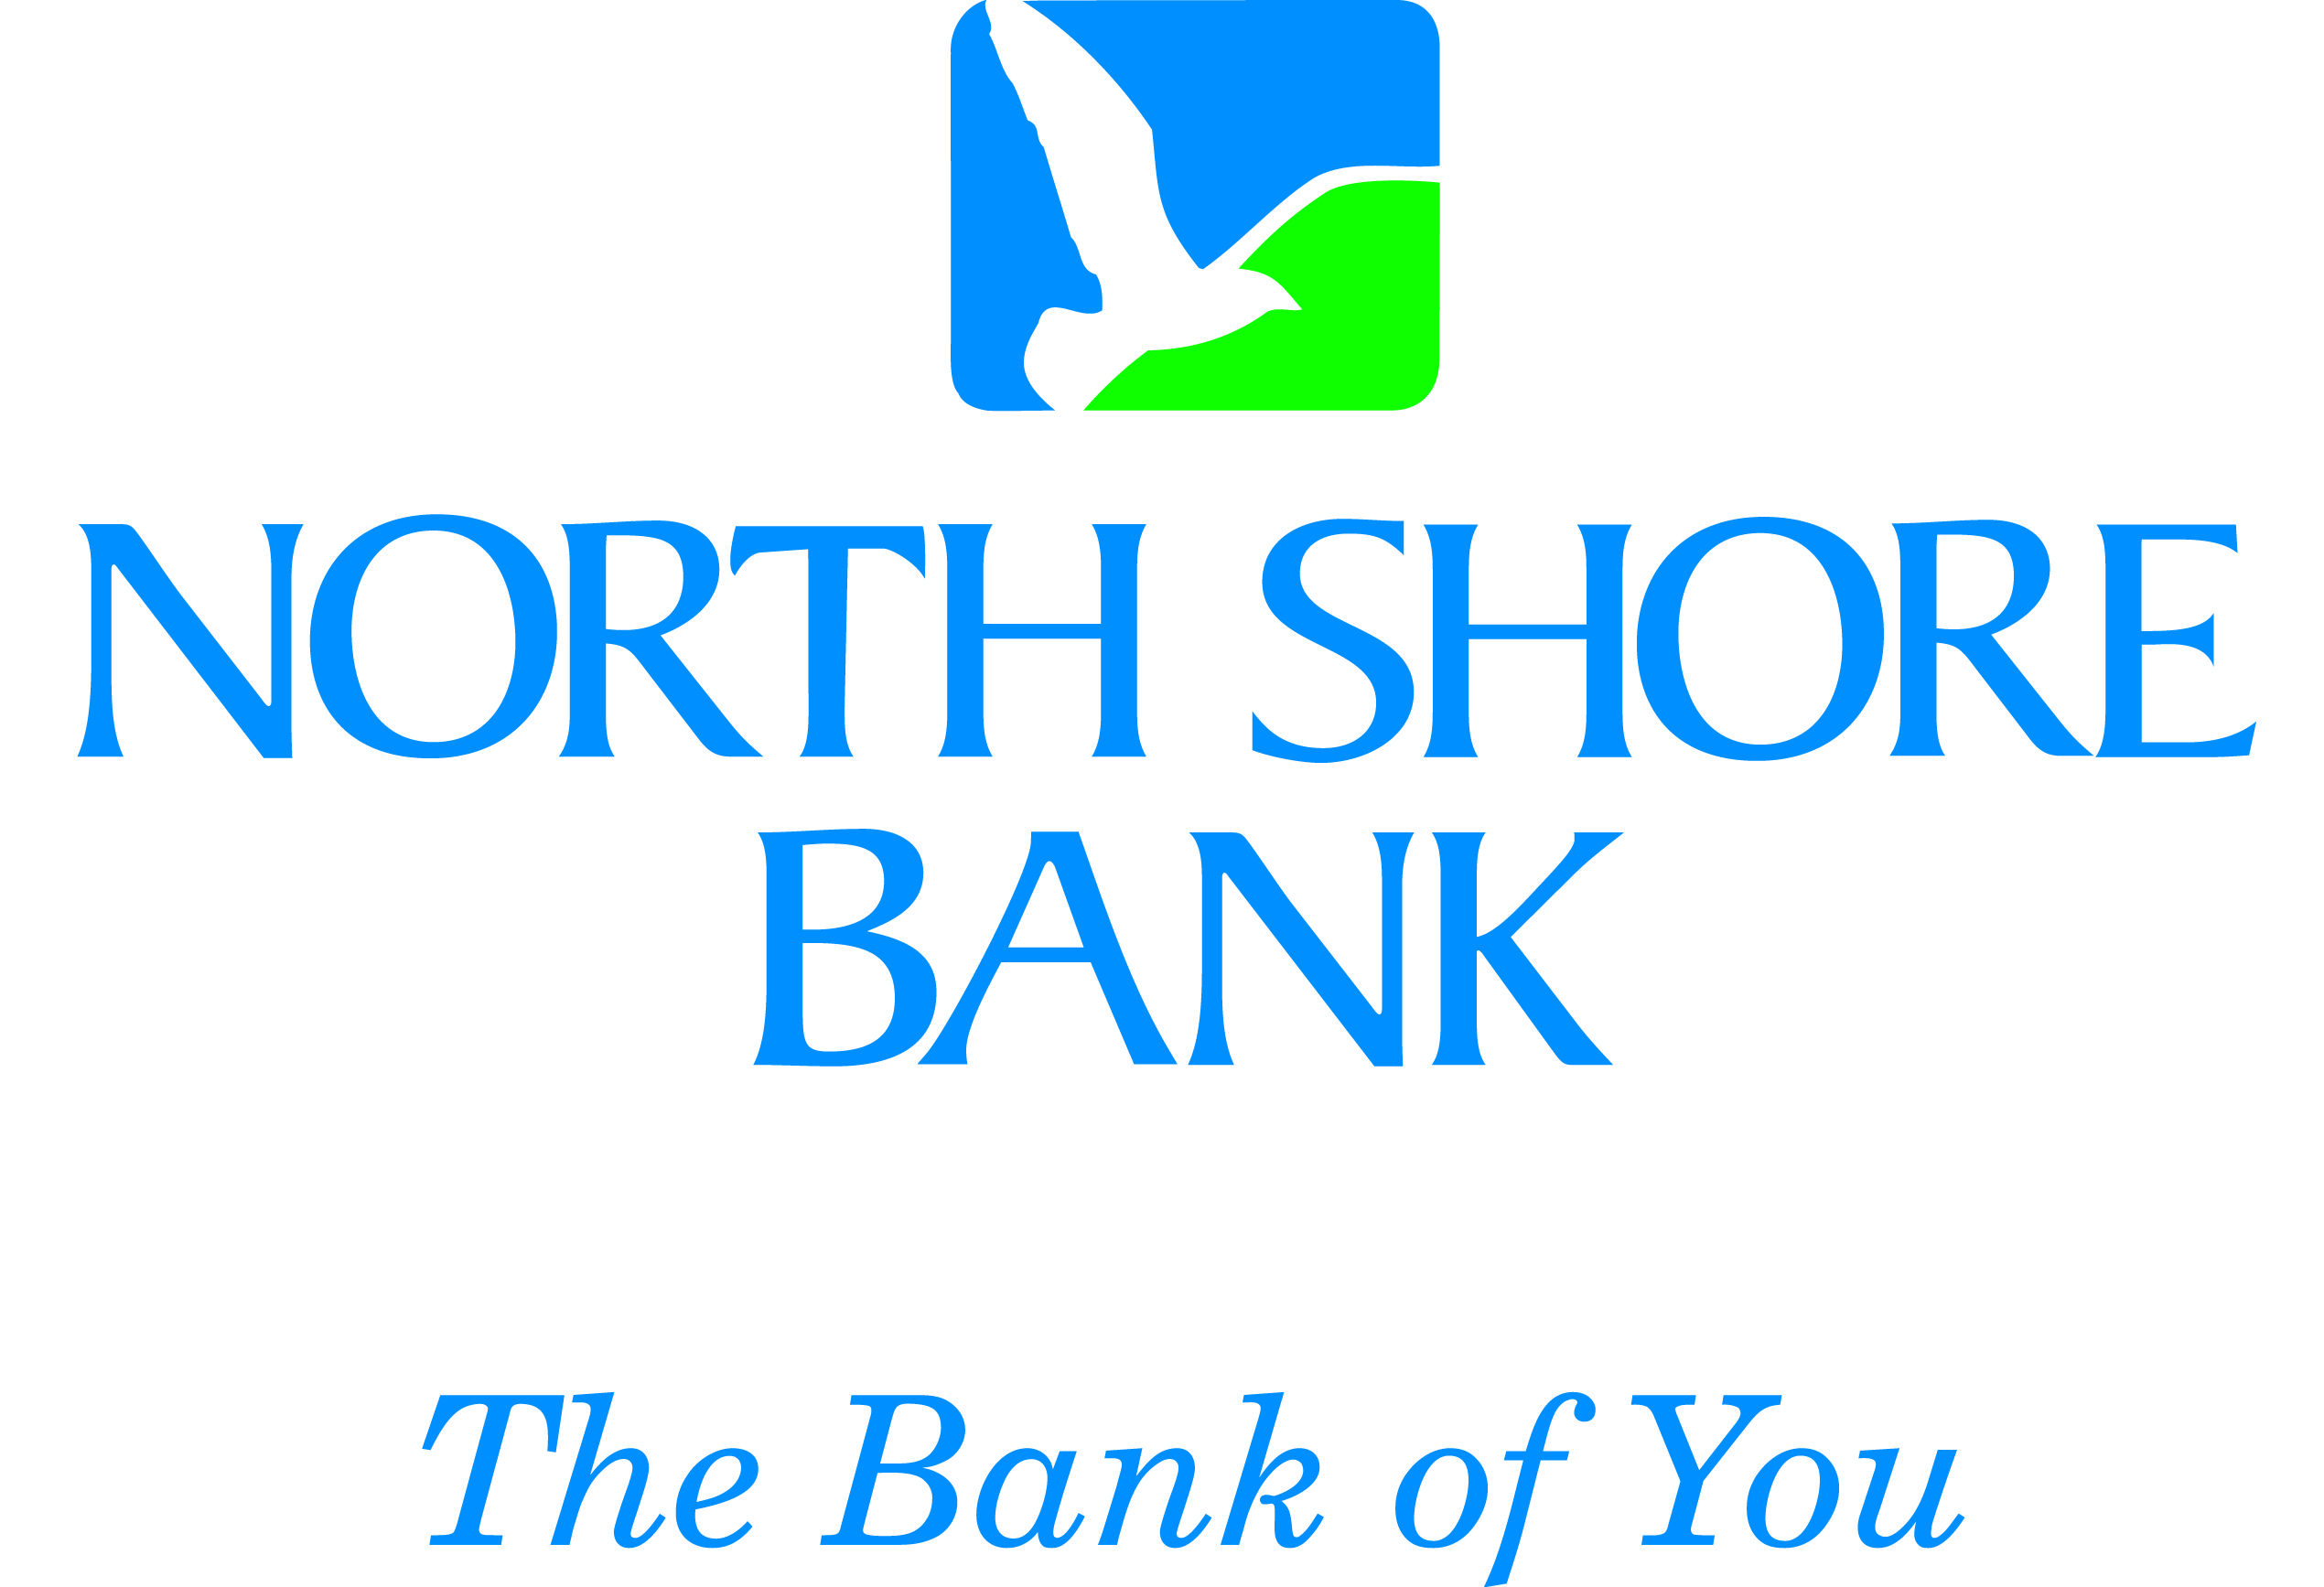 u.11271.LOGO North Shore Bank 16.jpg